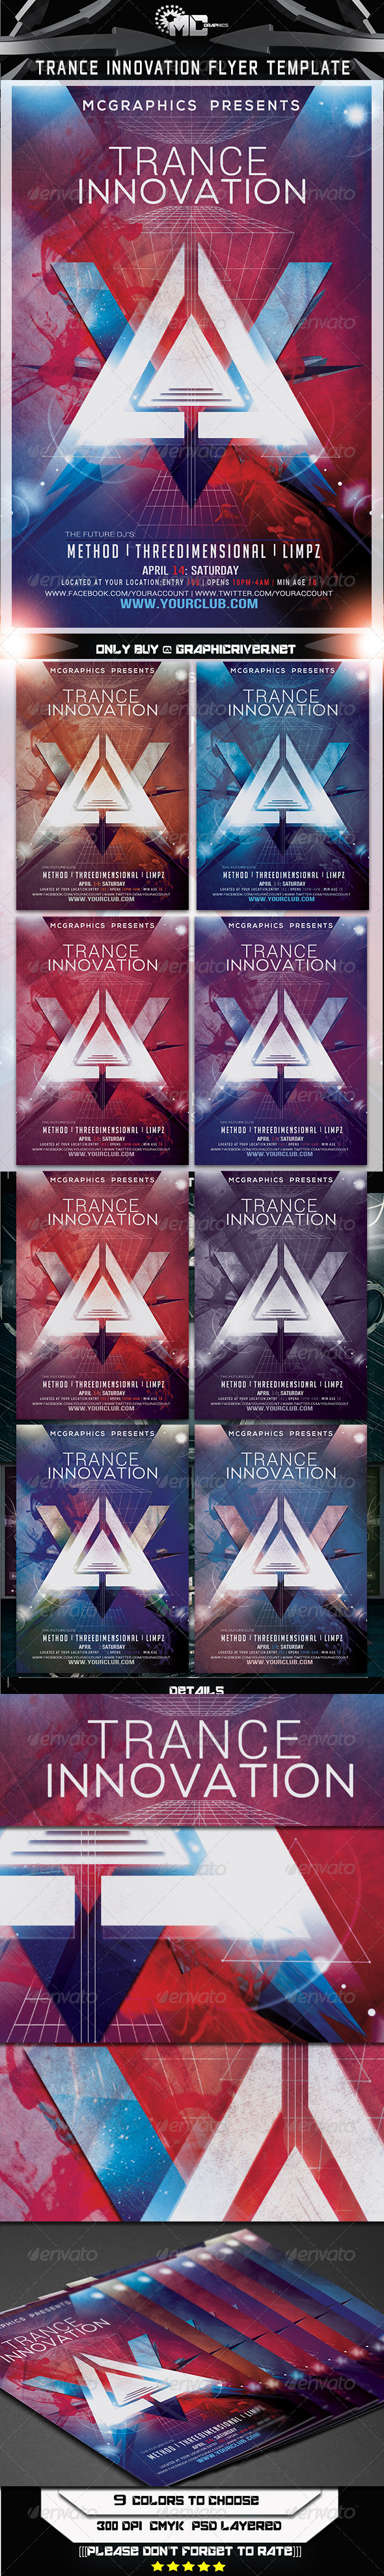 Trance Innovation Flyer Template - Flyers Print Templates